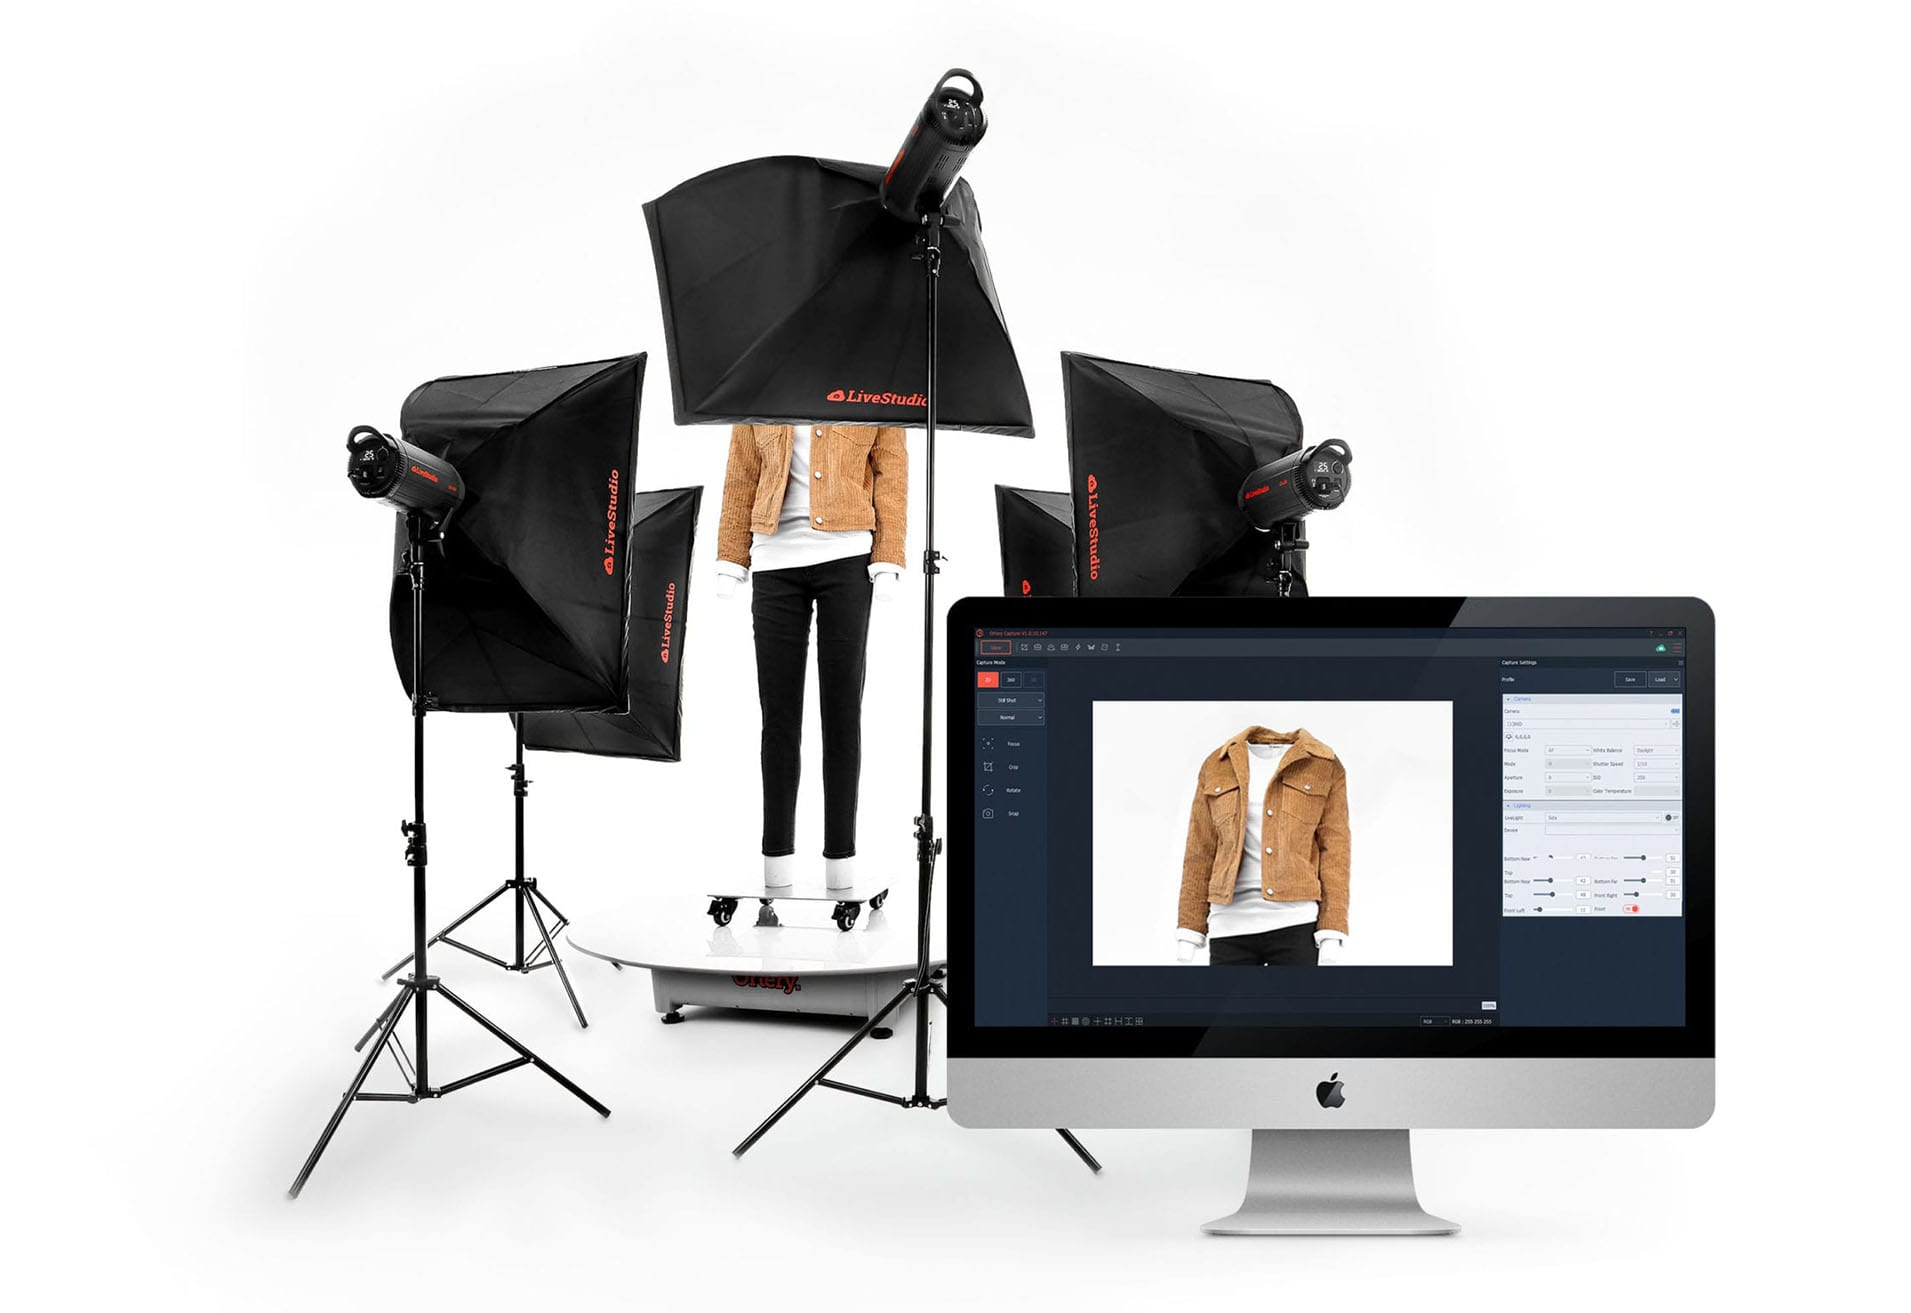 Ortery LiveStudio LED Photography Studio Light Kits controlled by software.